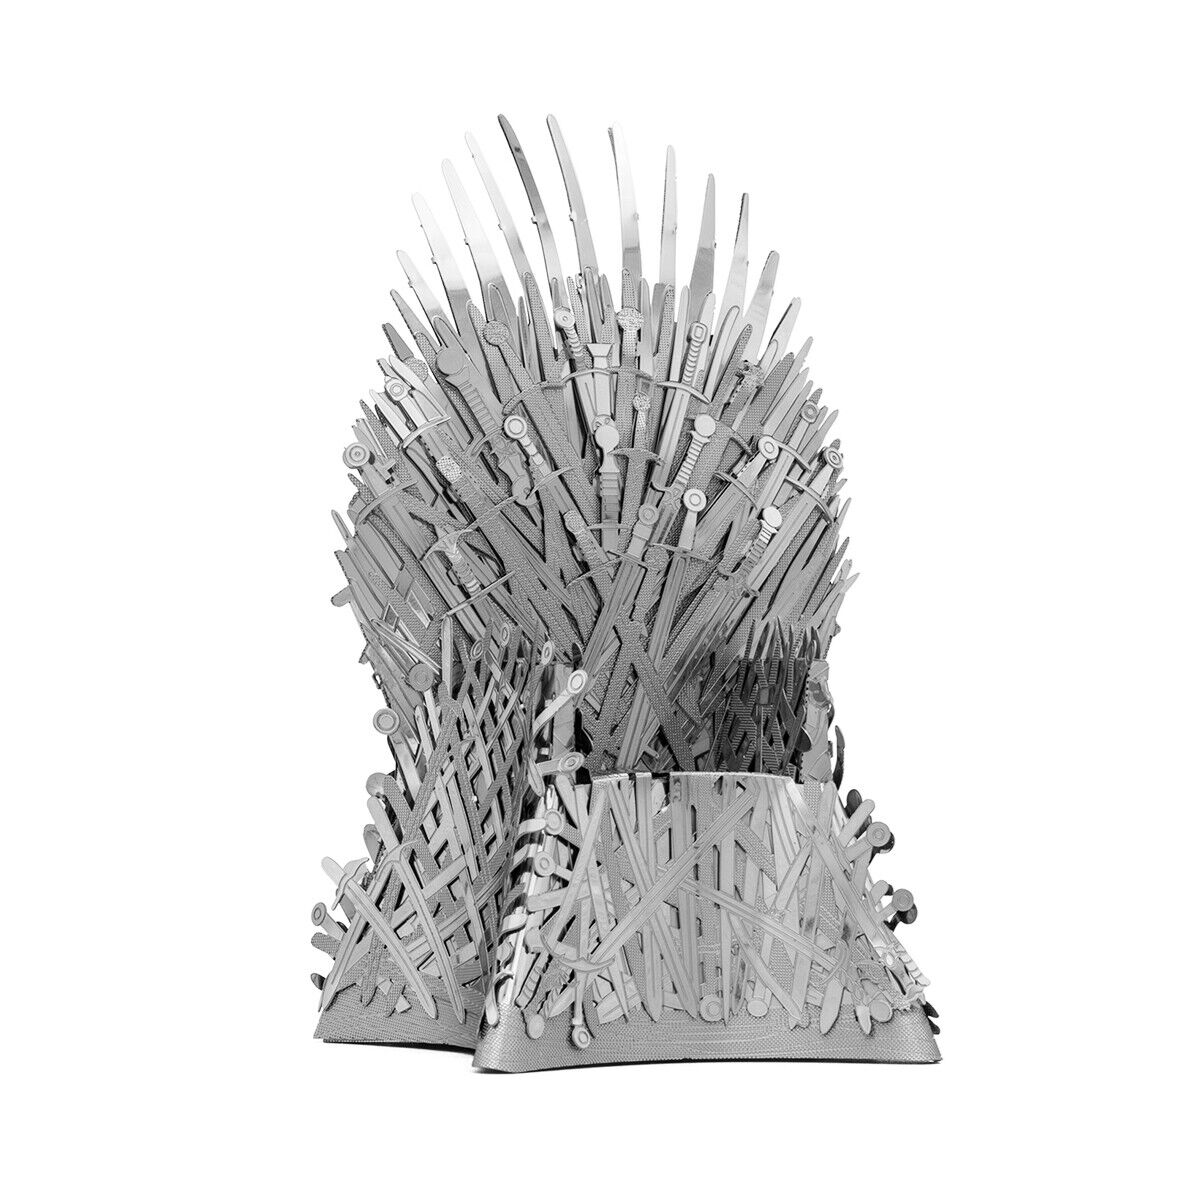 Fascinations ICONX Game of Thrones IRON THRONE 3D Metal Eart